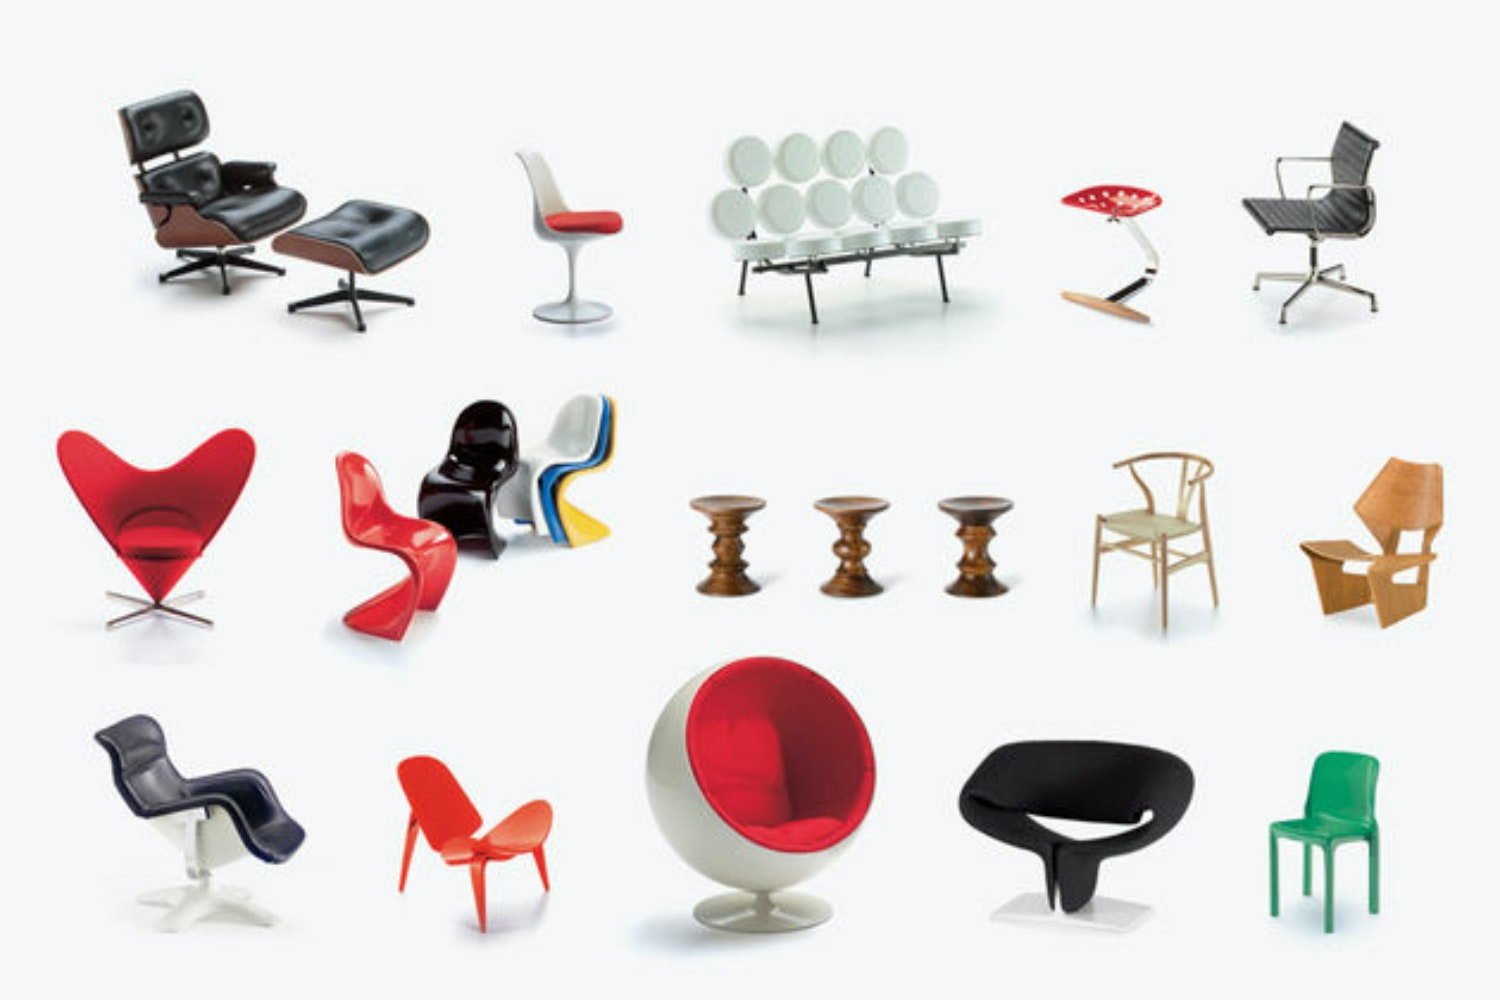 Miniatures Collection 2 by Vitra Design Museum for Vitra